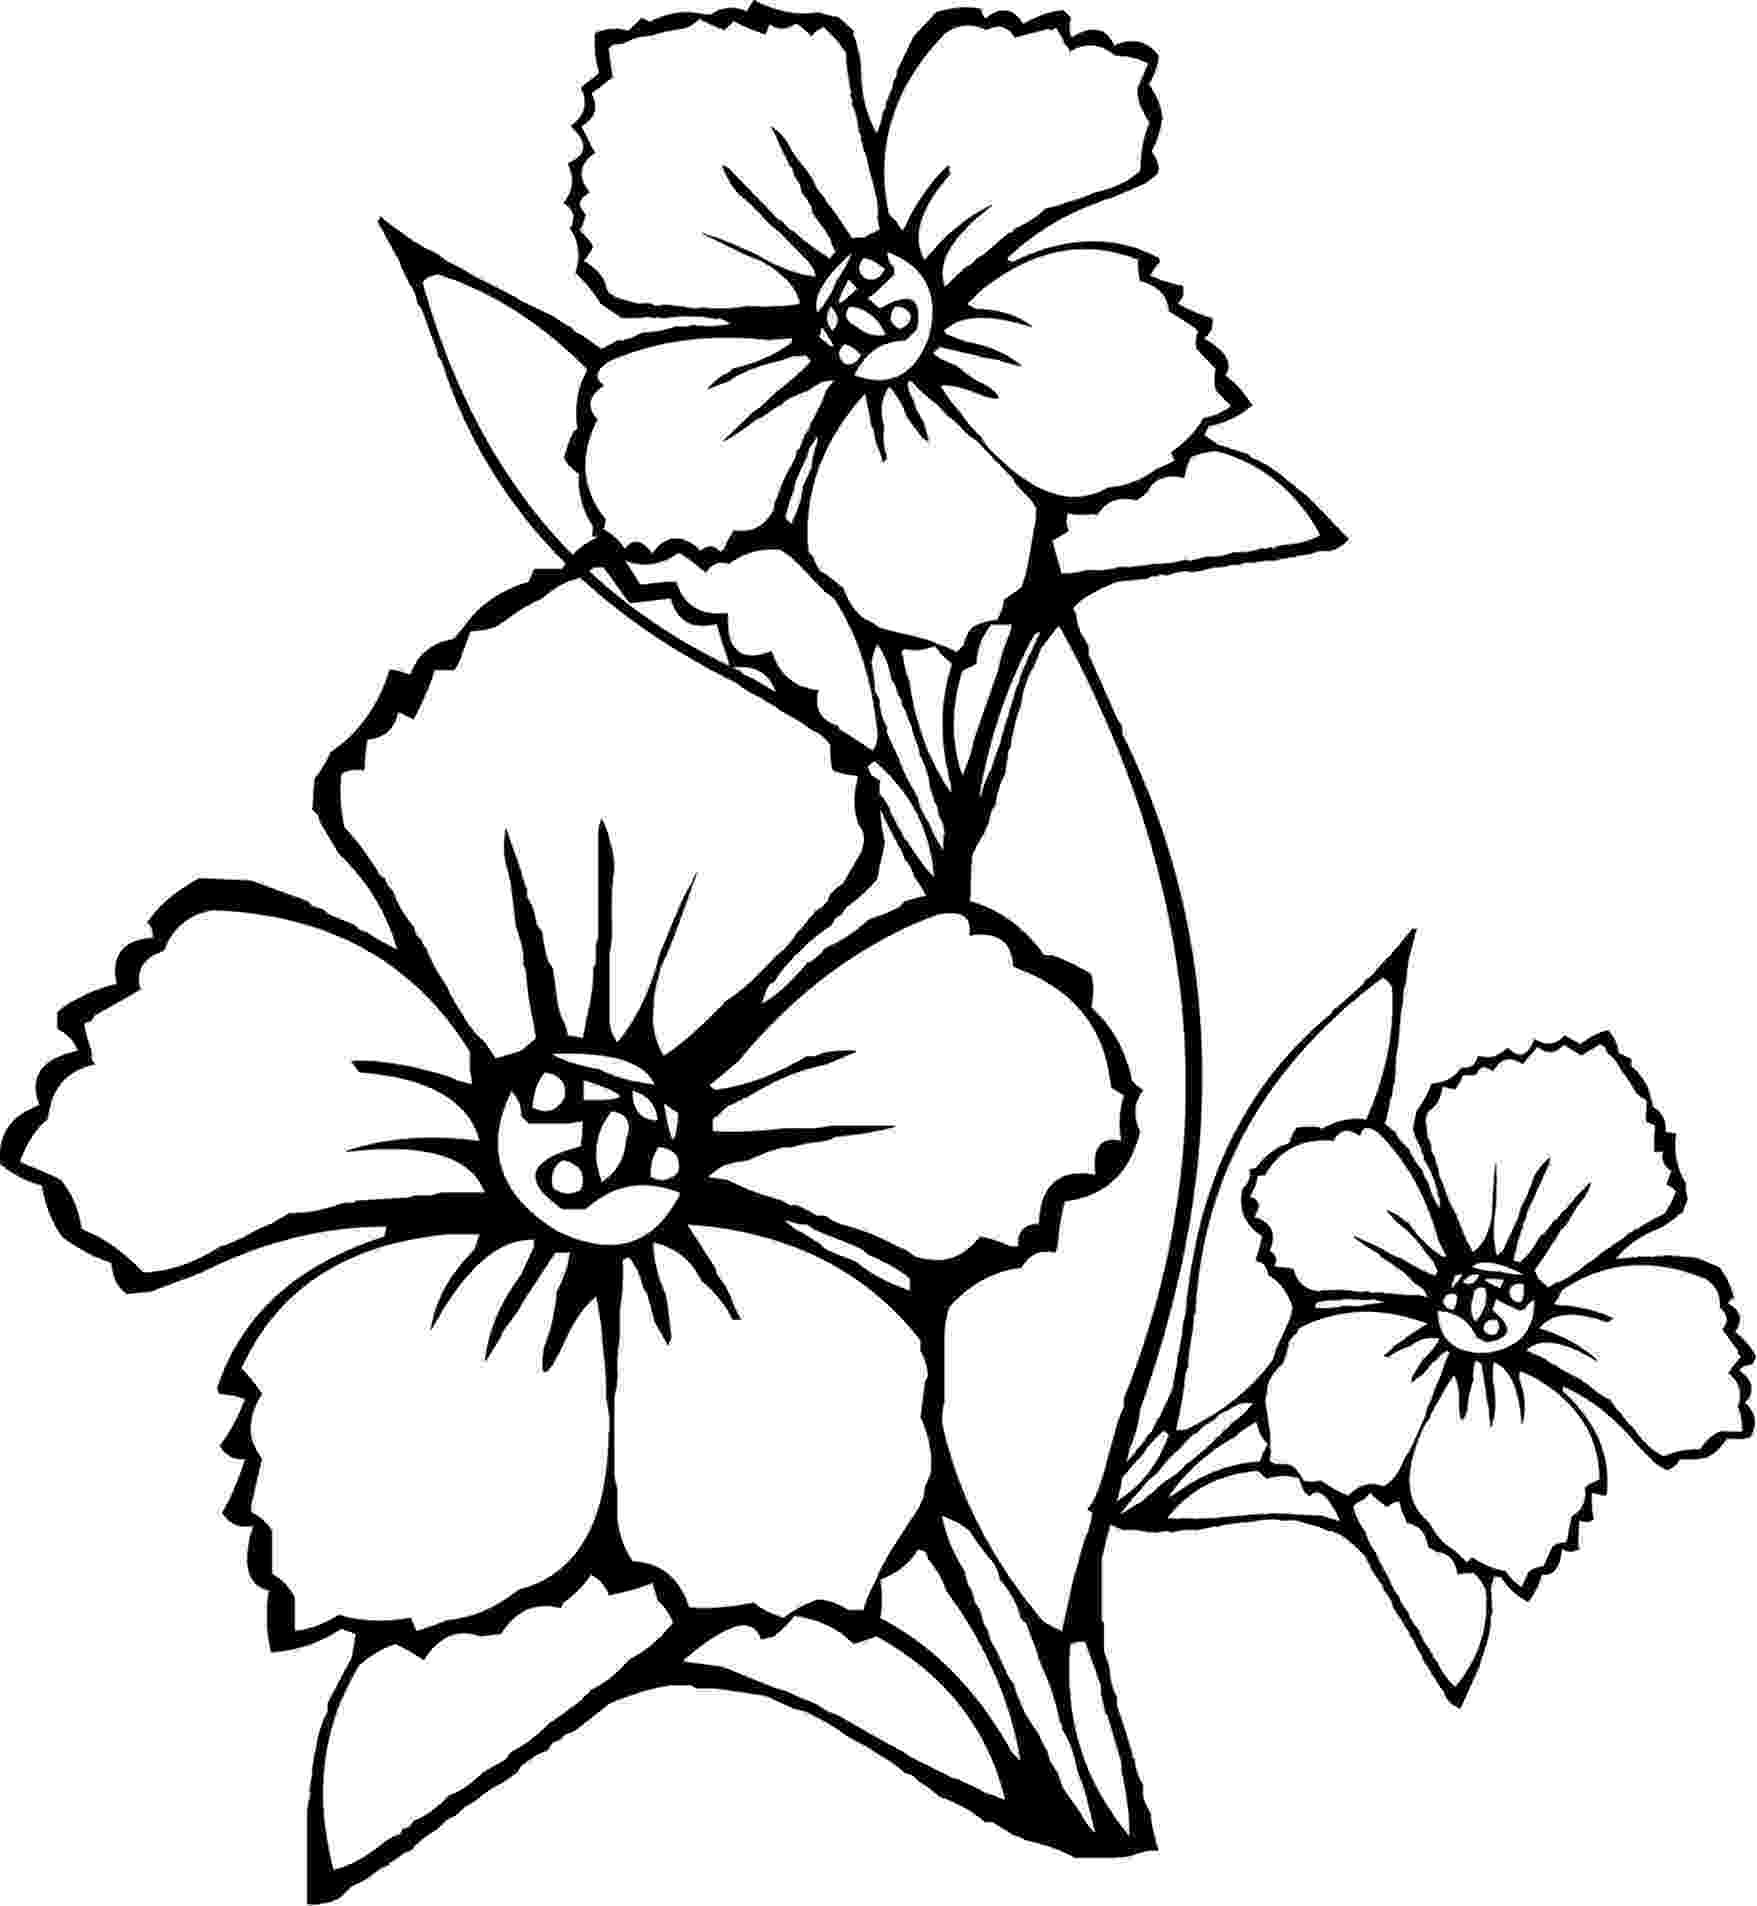 coloring page of flower free printable flower coloring pages for kids best flower page coloring of